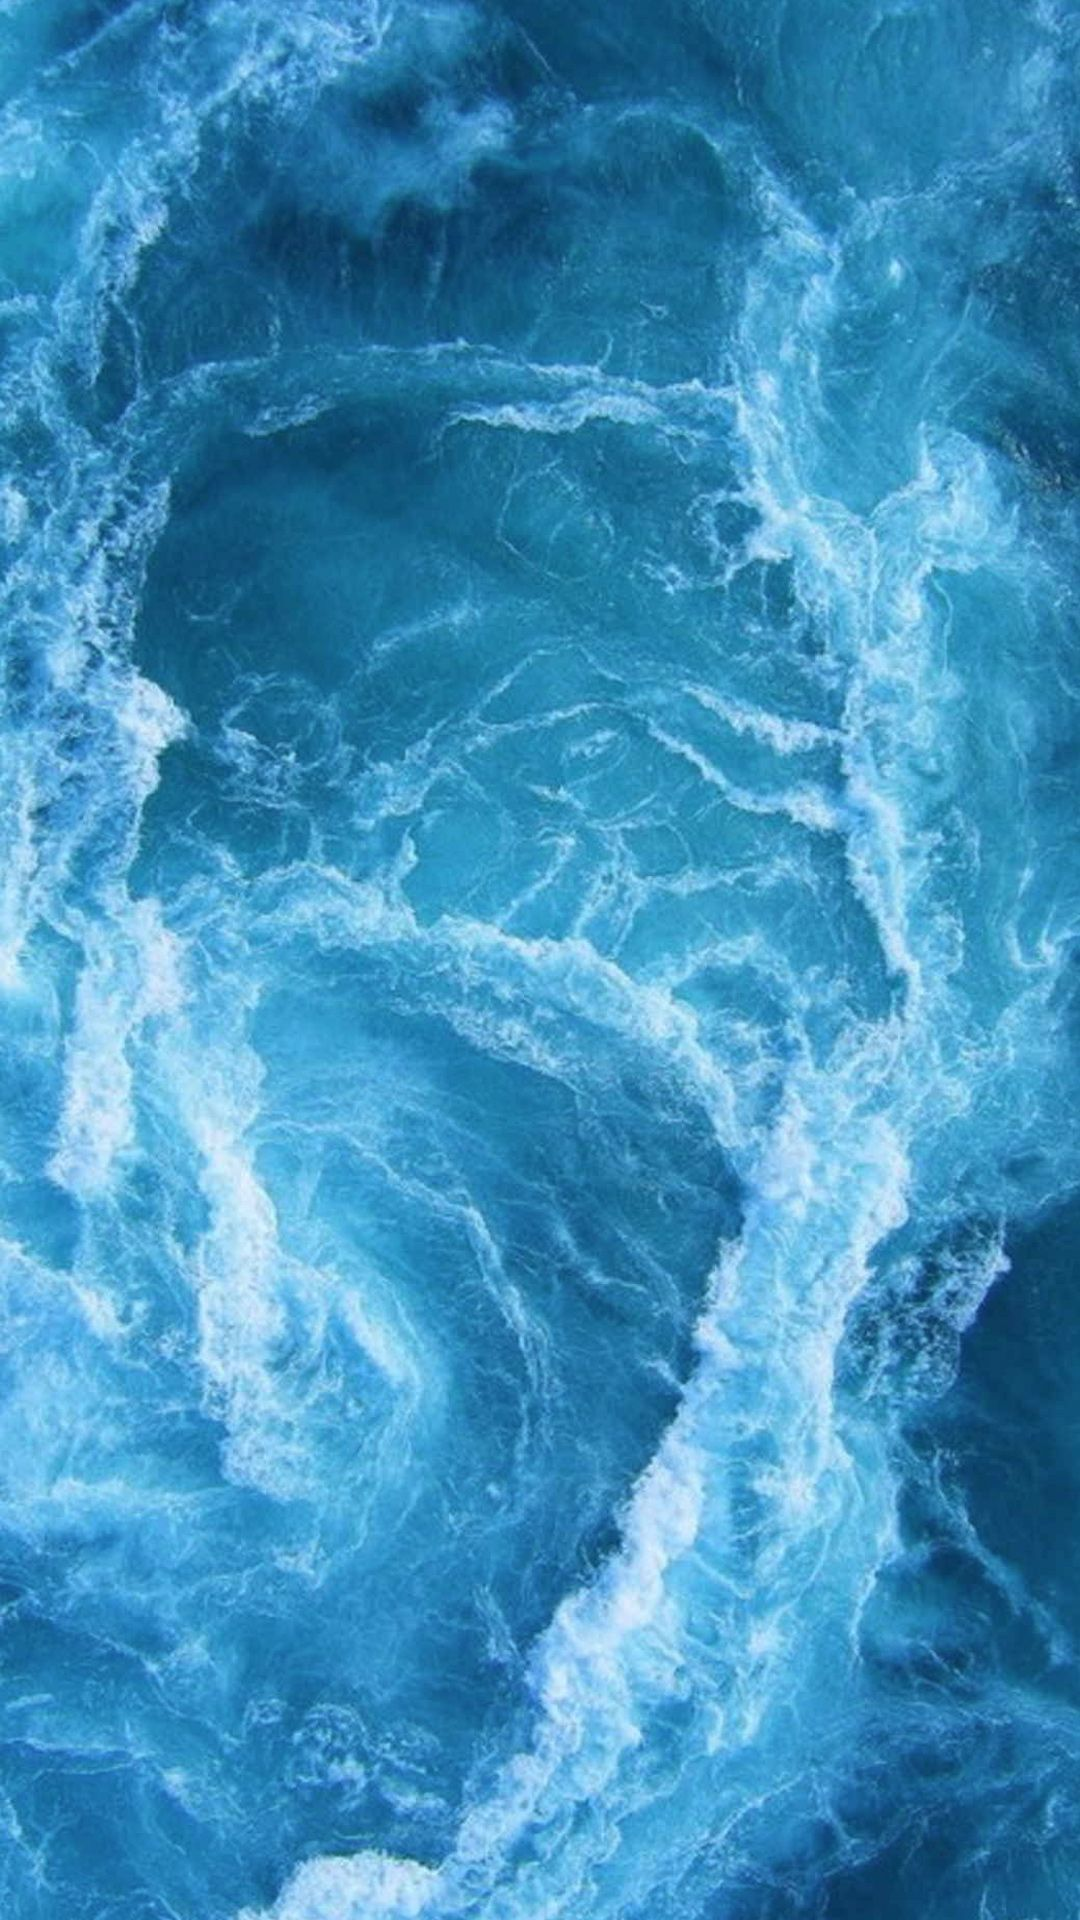 swirling blue ocean waves iphone 6 hd wallpaper iphone